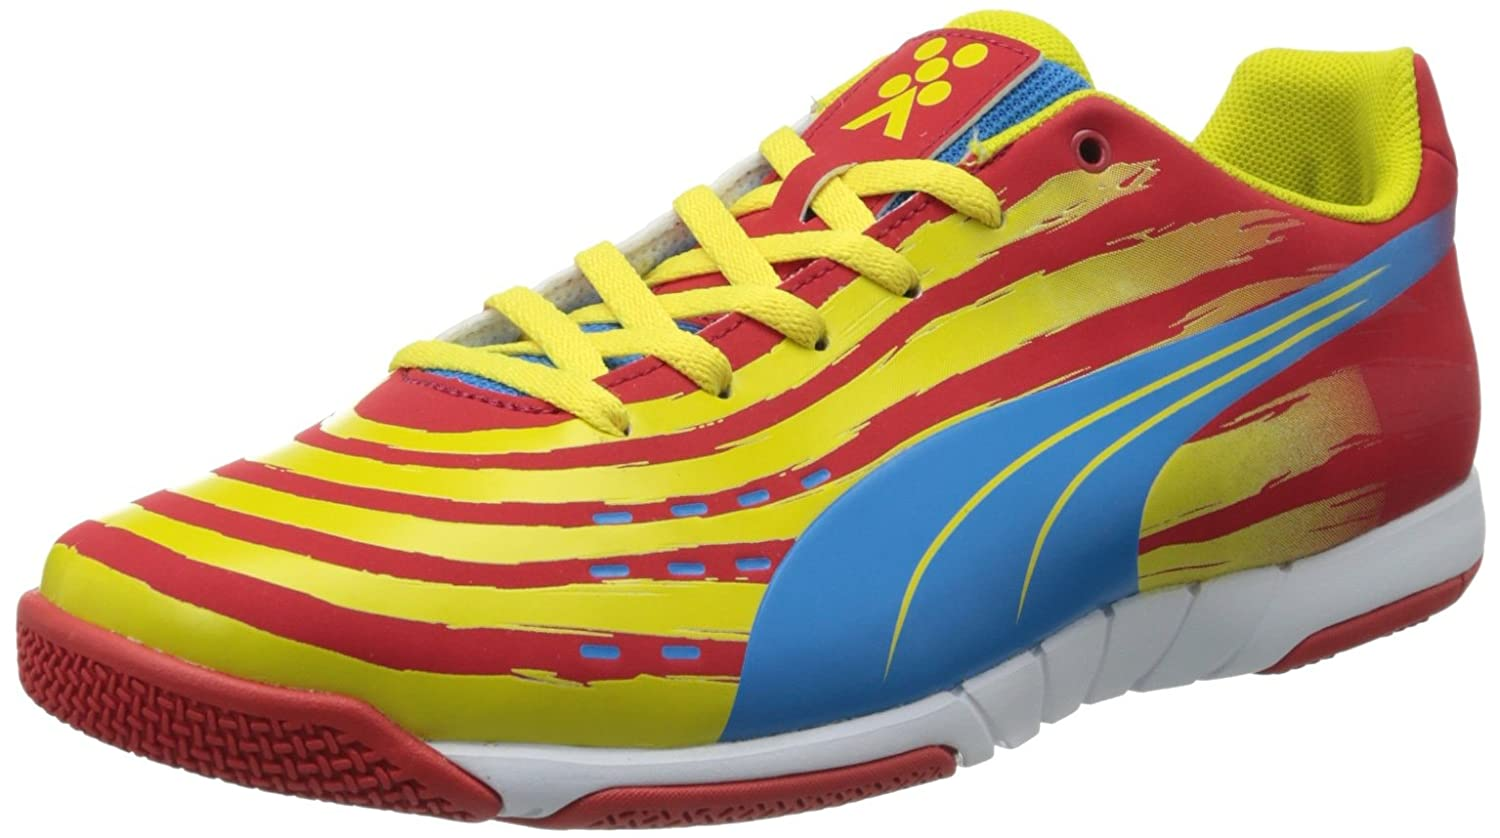 PUMA メンズ B00DOL3L44 10 mens_us|High Risk Red/Blue Aster/Vibrant Yellow/White High Risk Red/Blue Aster/Vibrant Yellow/White 10 mens_us